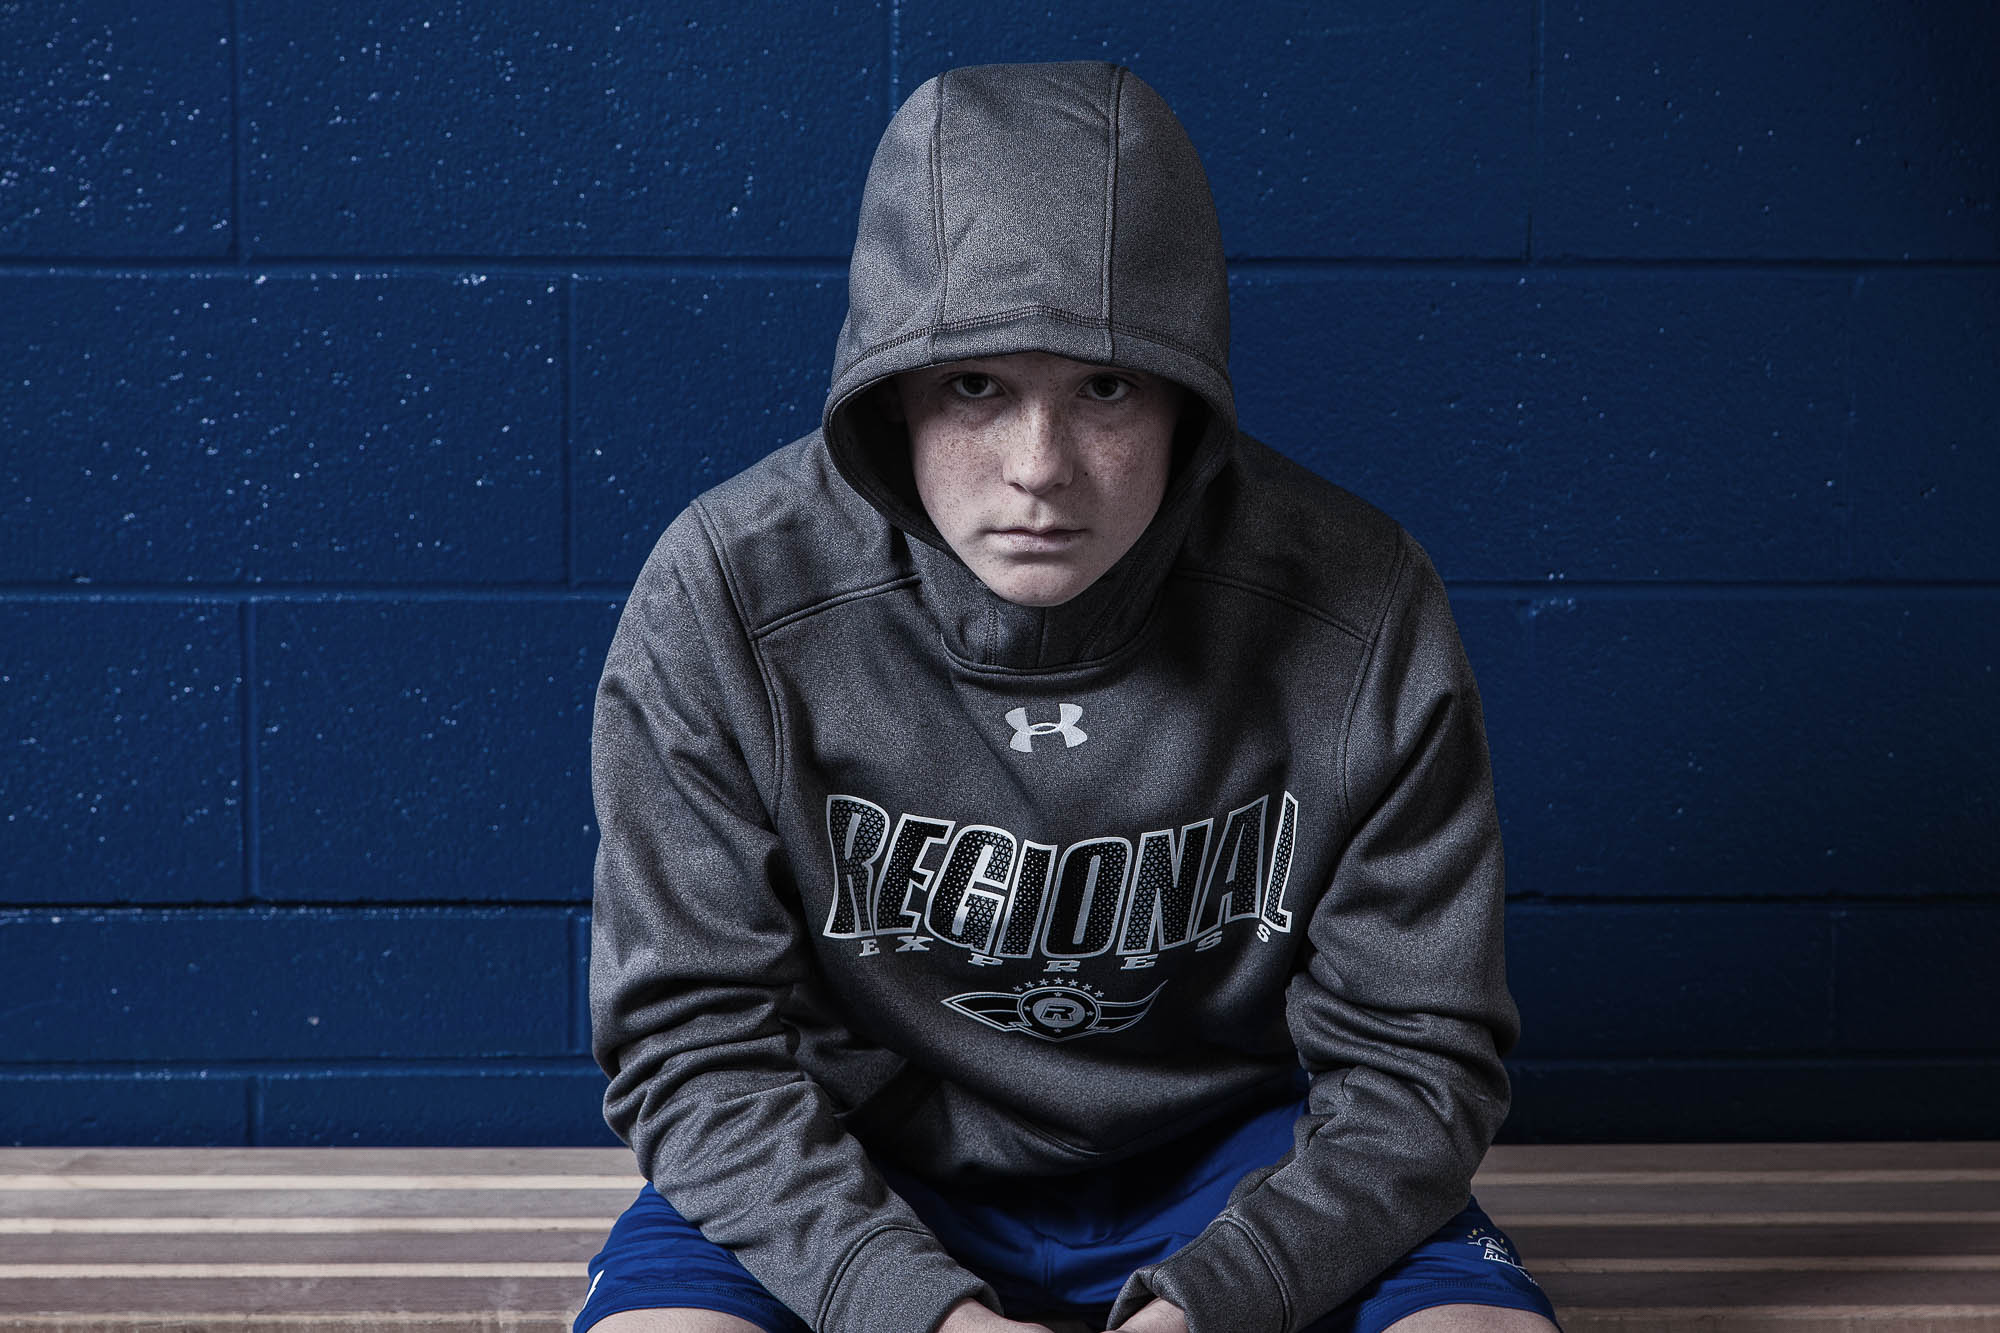 Promising young hockey player wears Under Armour in sportswear shoot